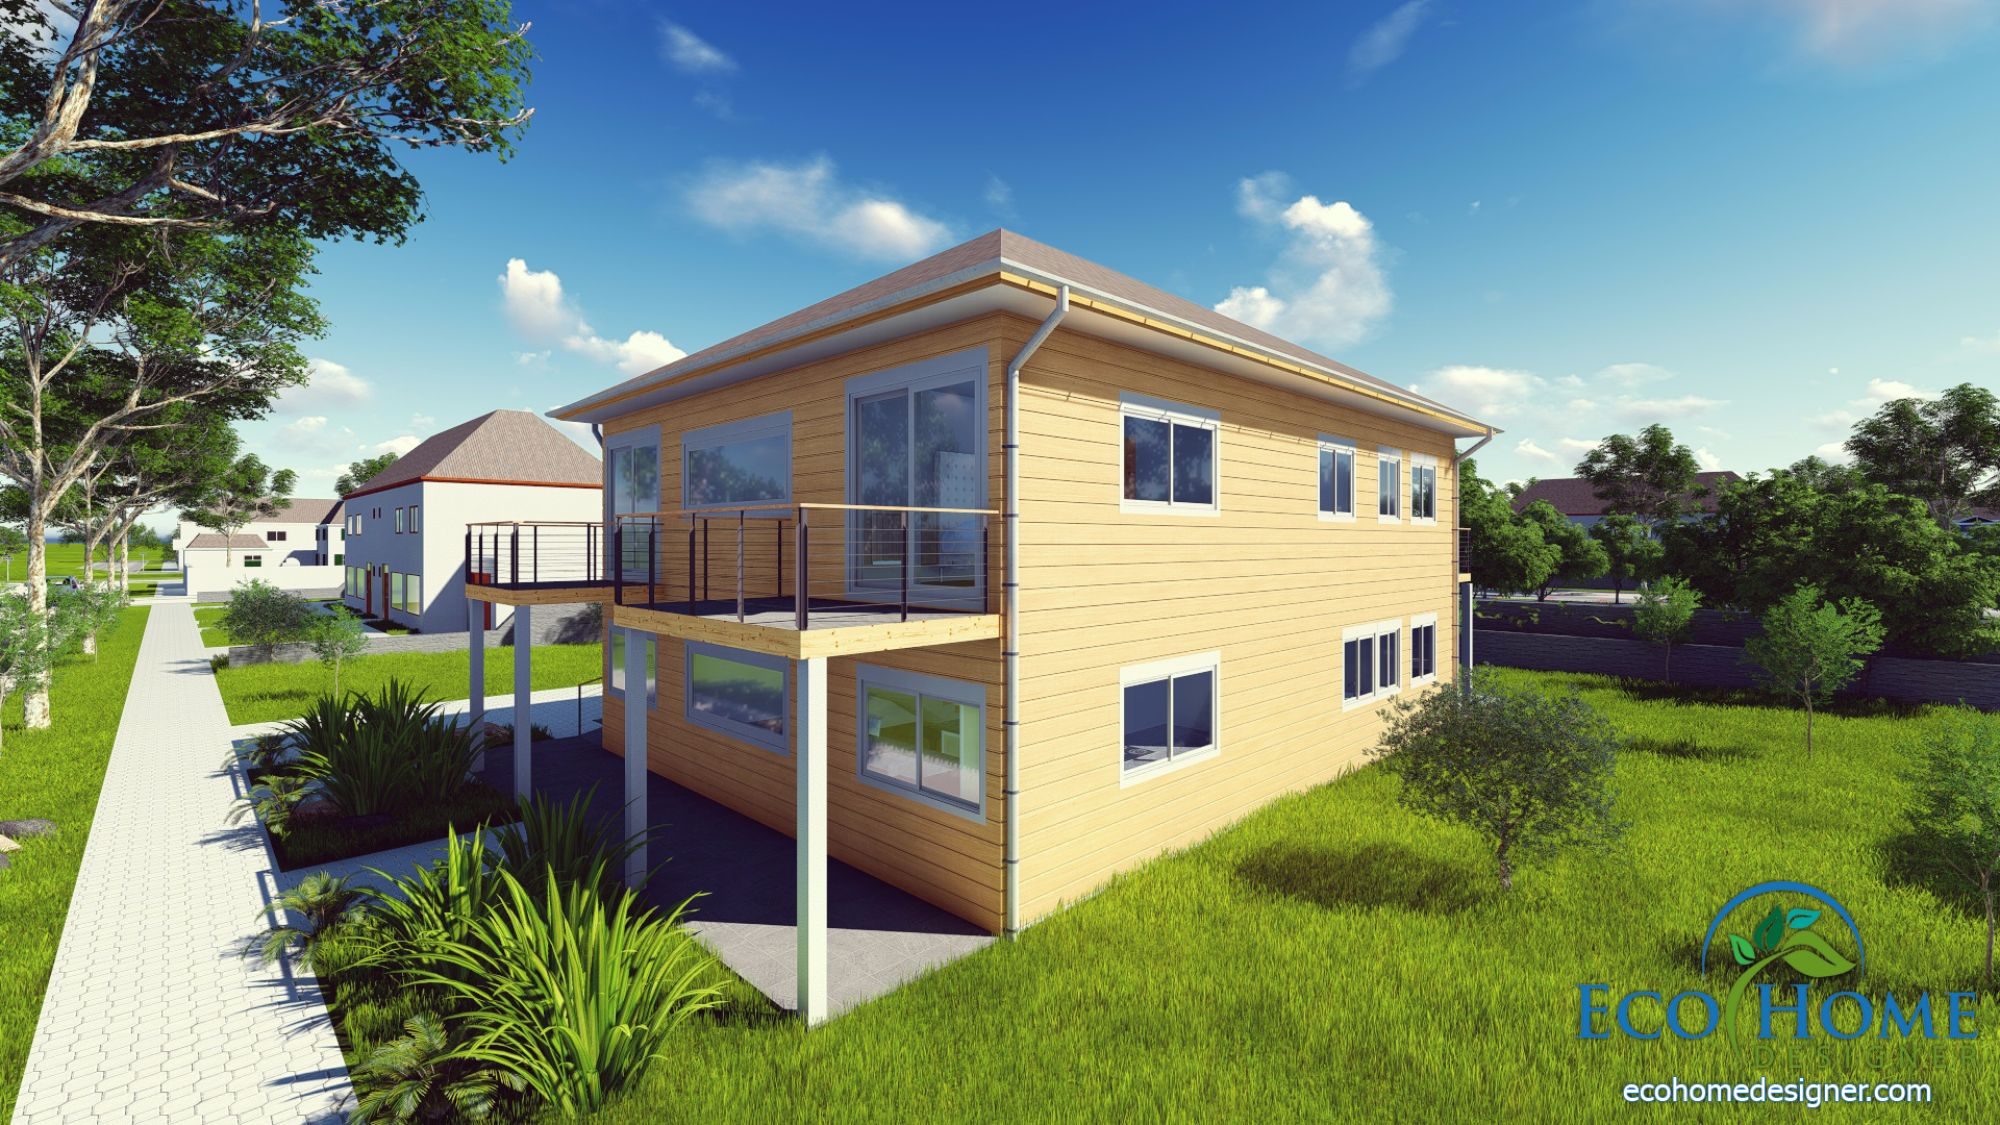 sch10 4 x 40ft 4 bedroom container home eco home designer